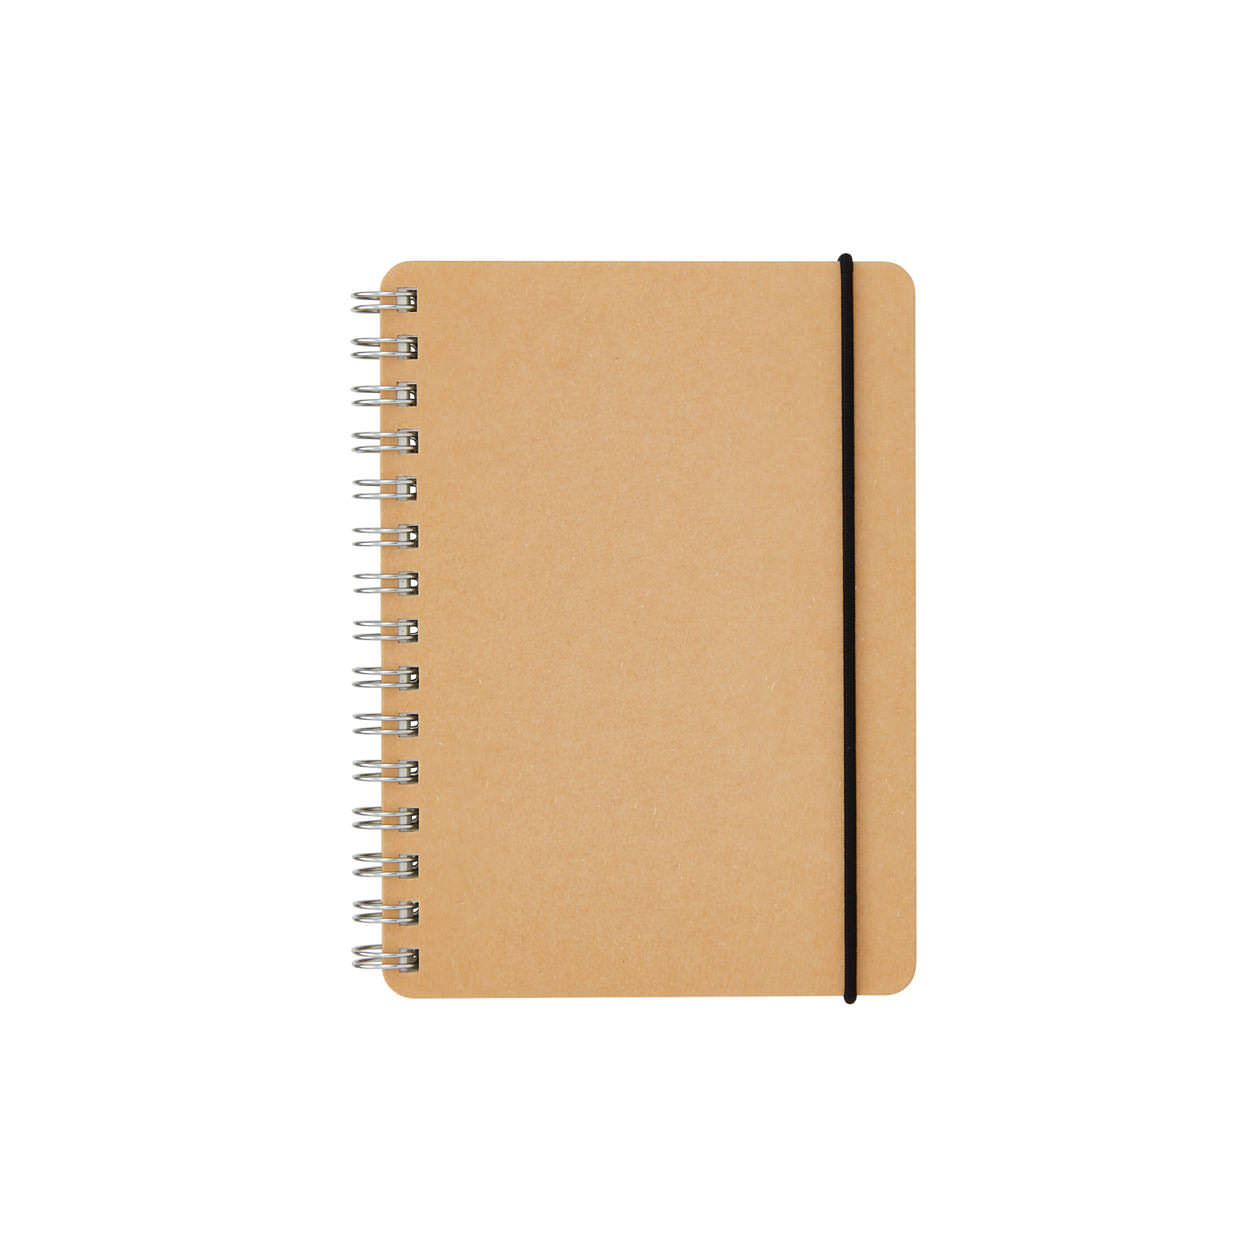 A5 Double Ring Notebook Dotted Paper